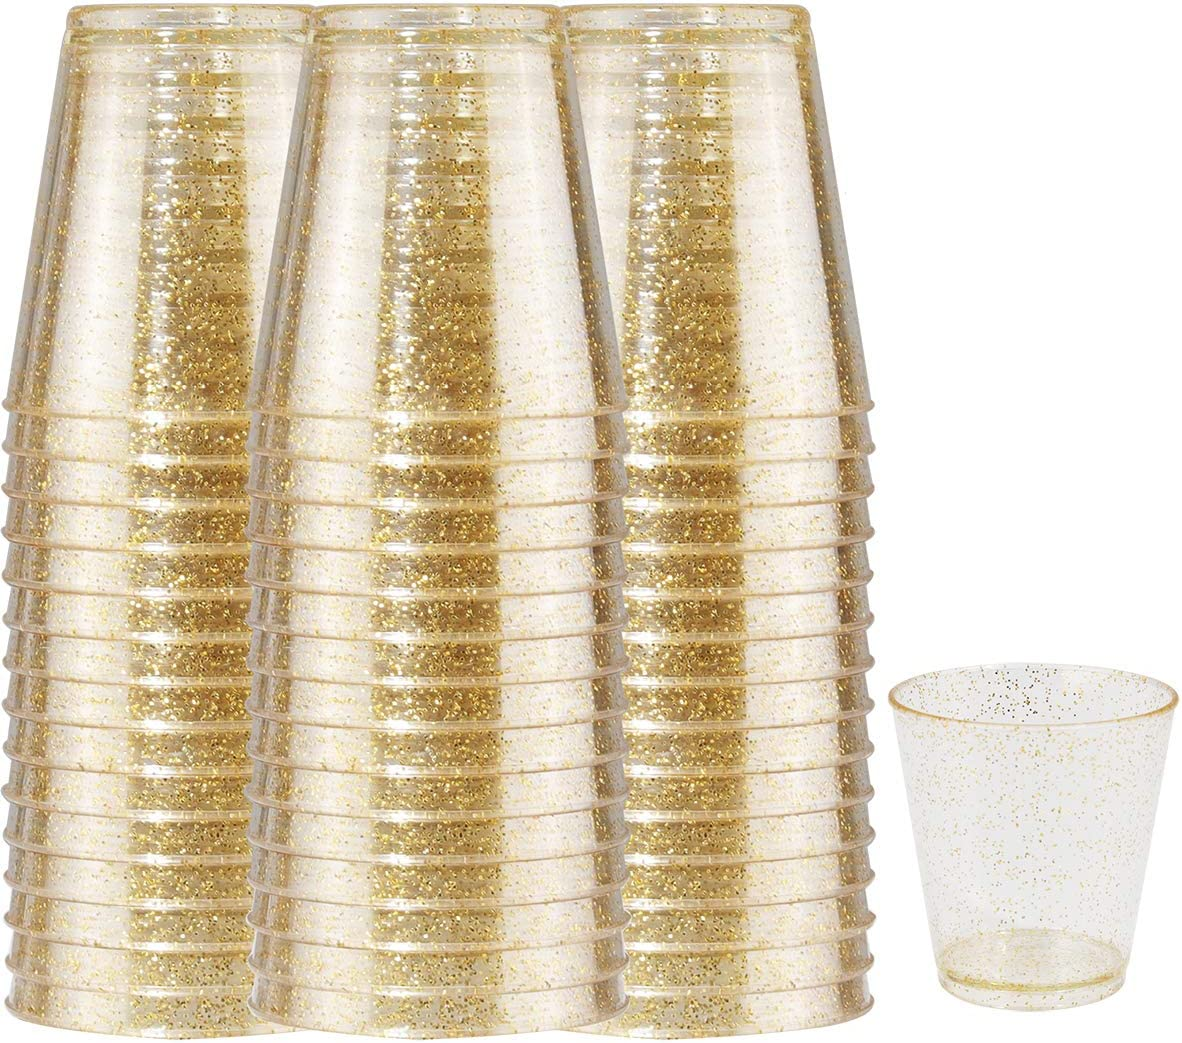 200 PACK Plastic Gold Glitter Shot Cups, 2OZ Disposable Shot Glasses,Small Hard Plastic Tumblers,Gold Tasting Sampling Cups,Premium Mini Container Perfect for Whiskey and Other Food Samples